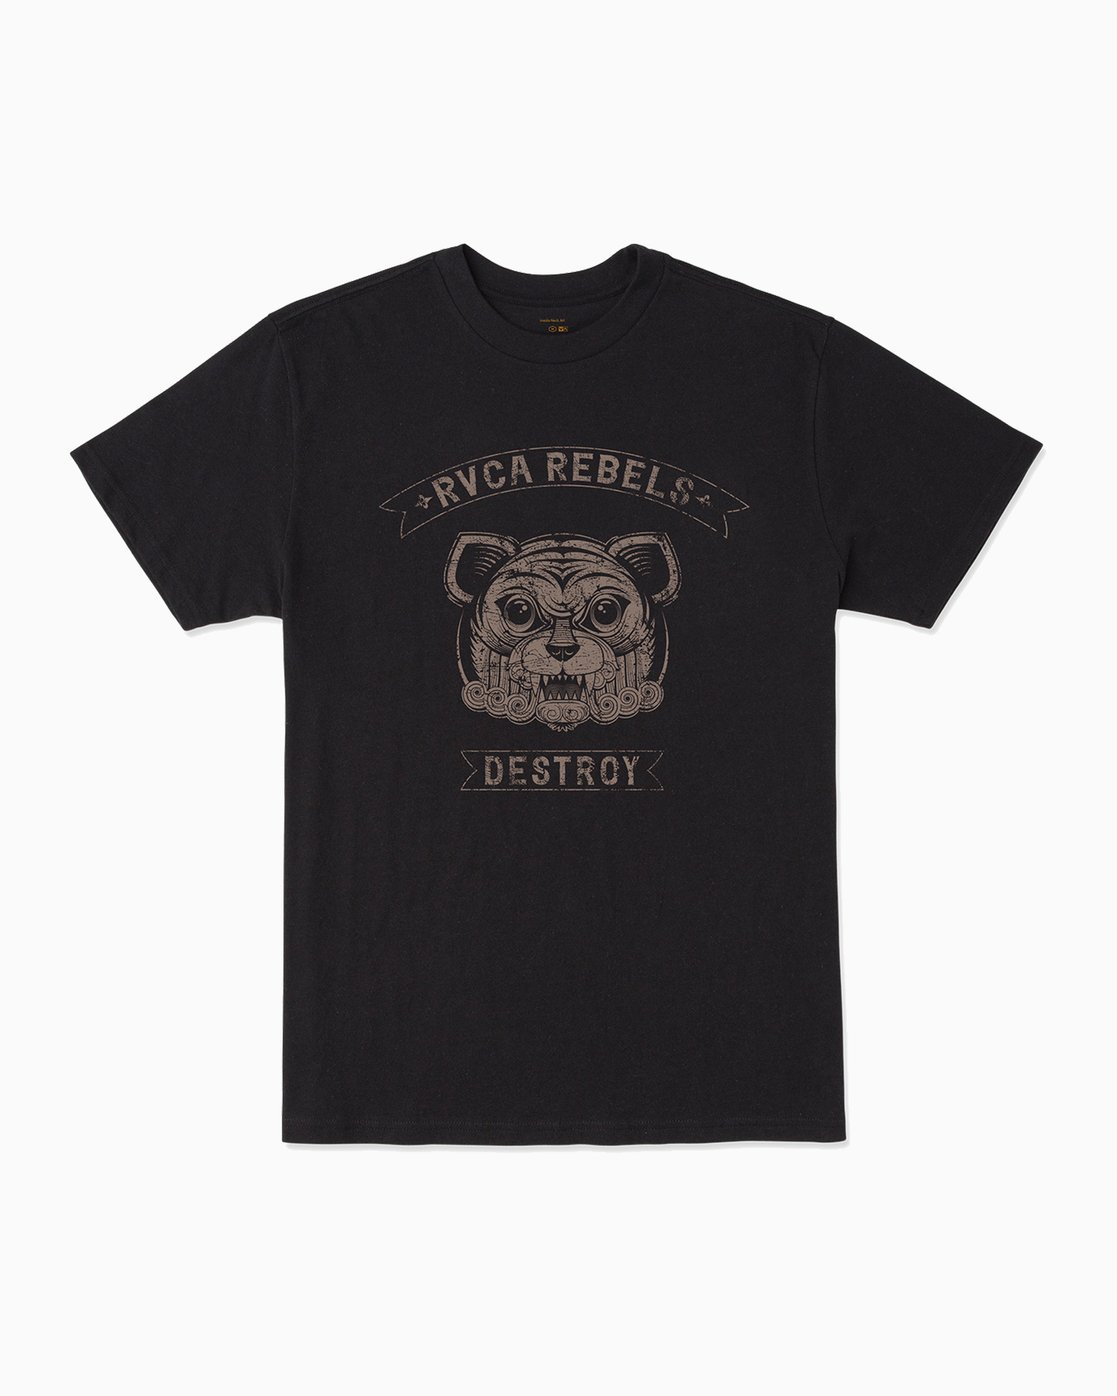 0 George Thompson RVCA Rebels T-Shirt Black M401301R RVCA